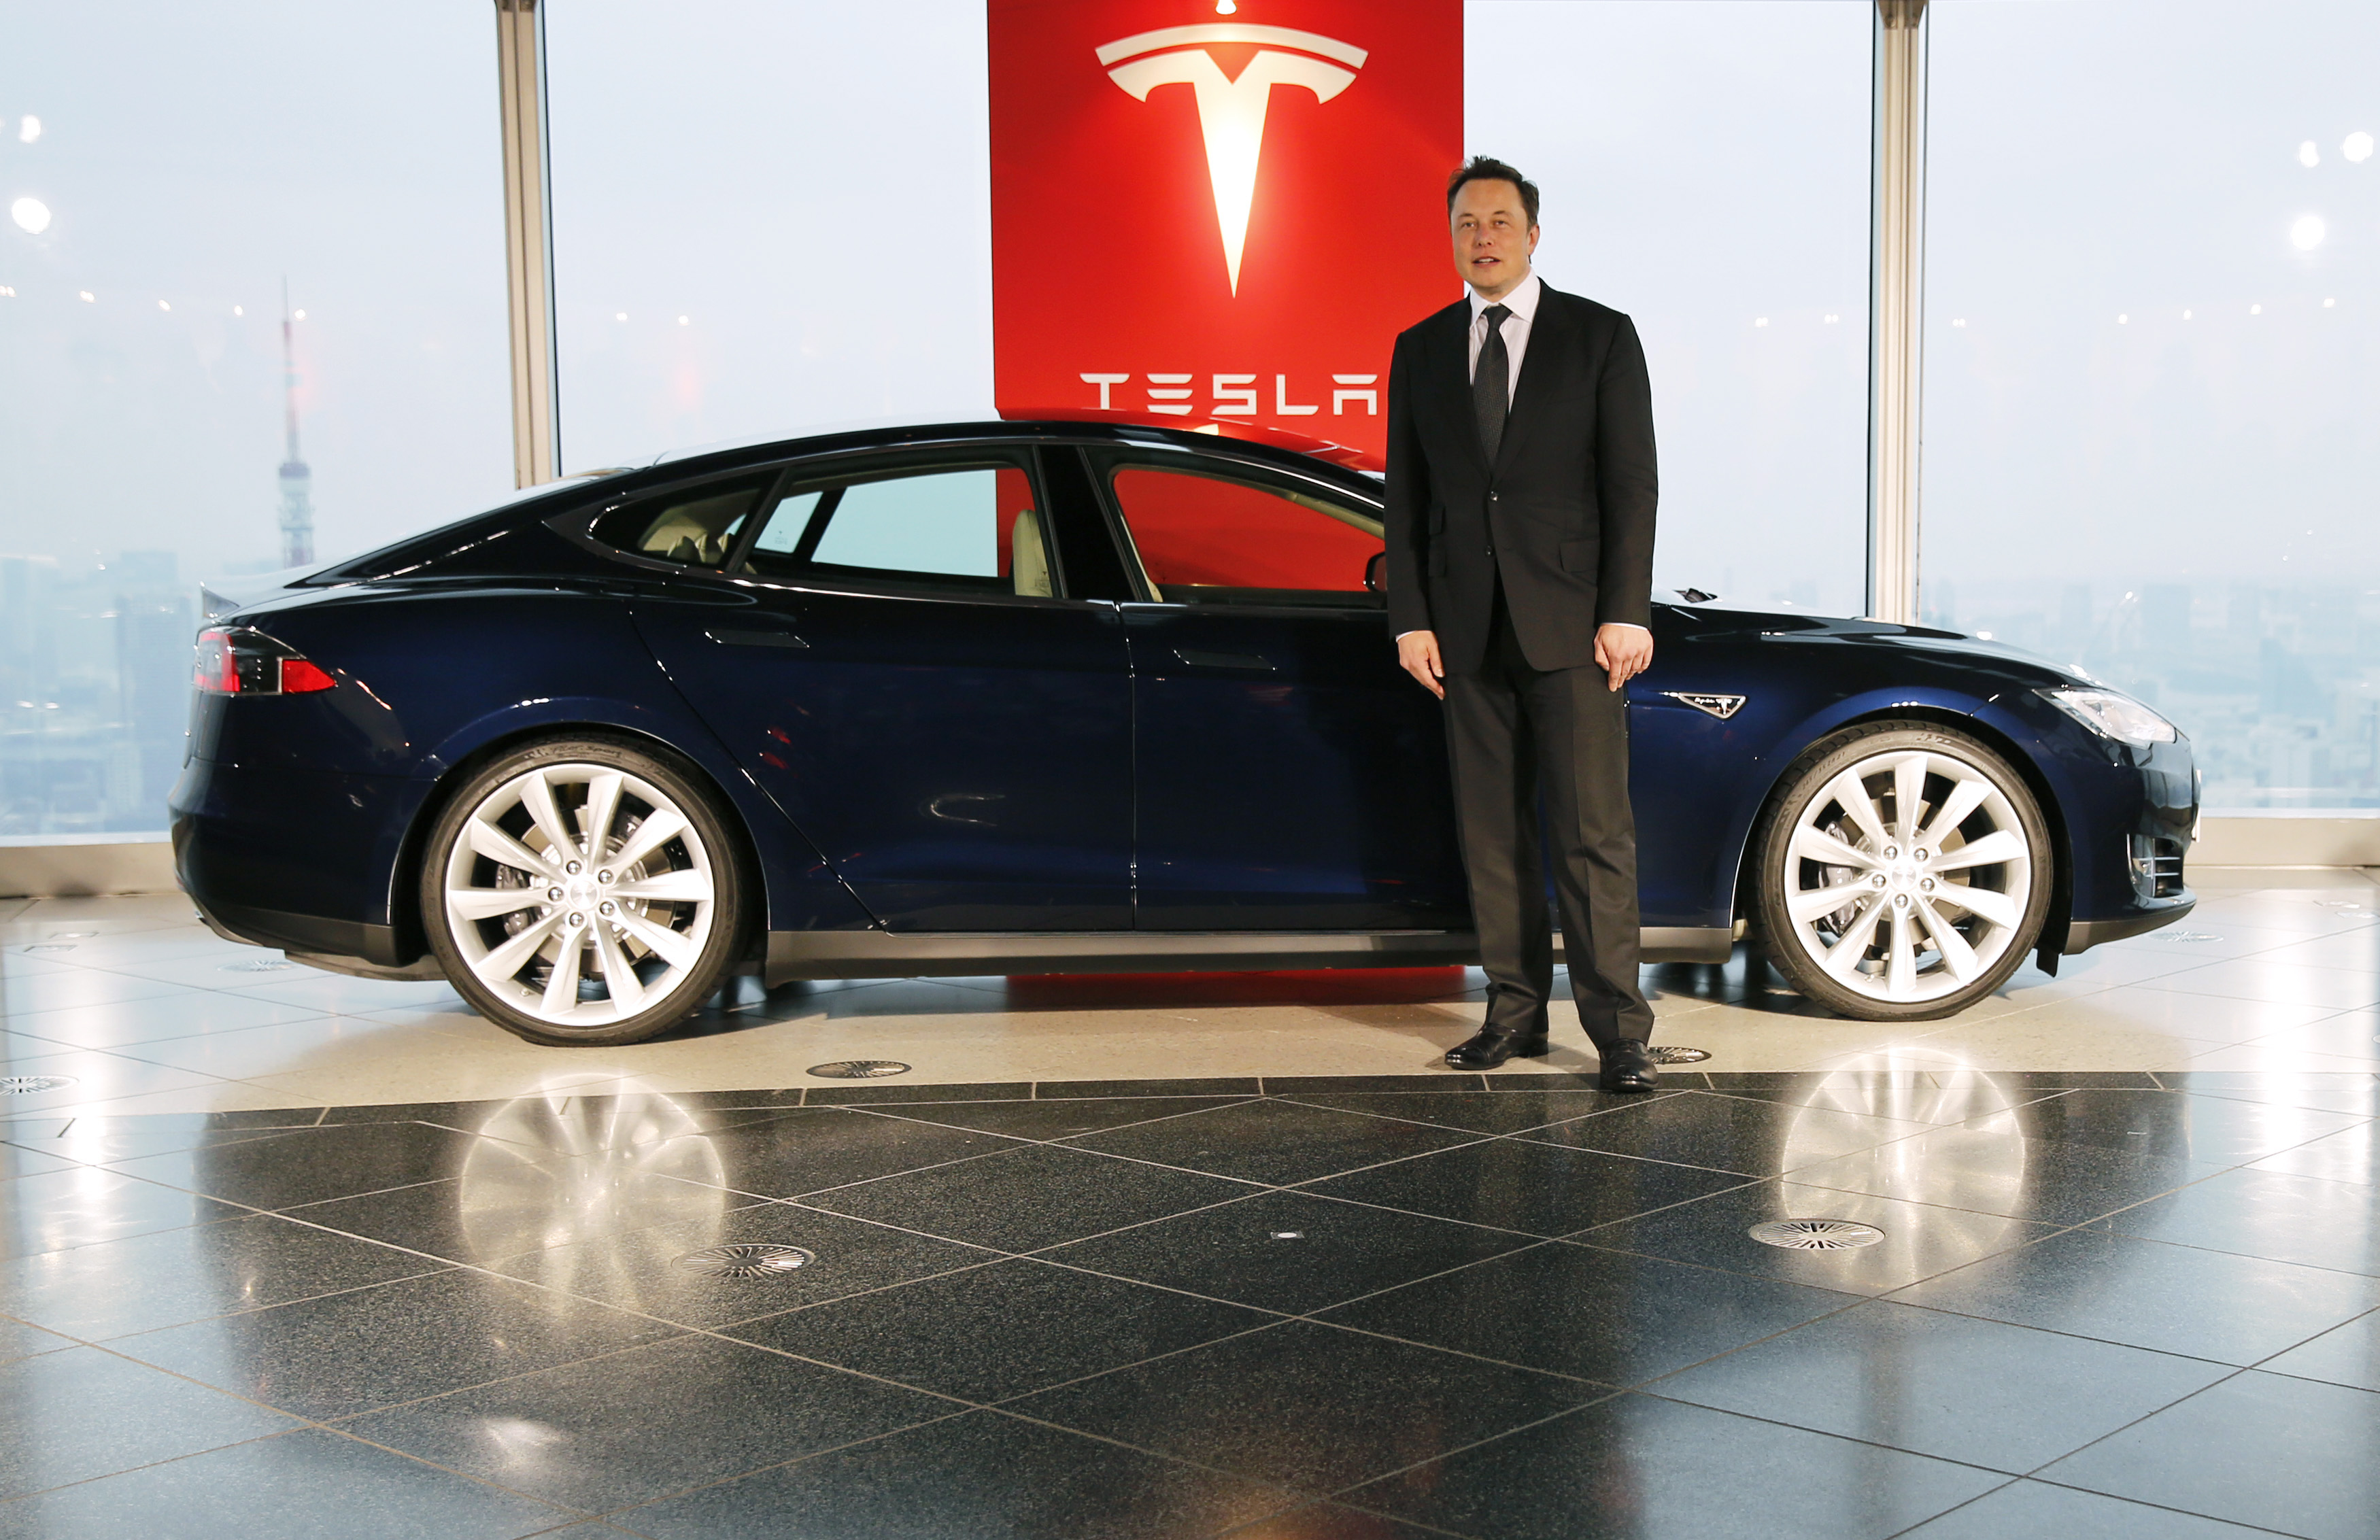 Tesla Battery Cost >> 2017 Tesla Model 3 Starting Price: $50,000, According To A Sobering Report On Tesla's Future ...